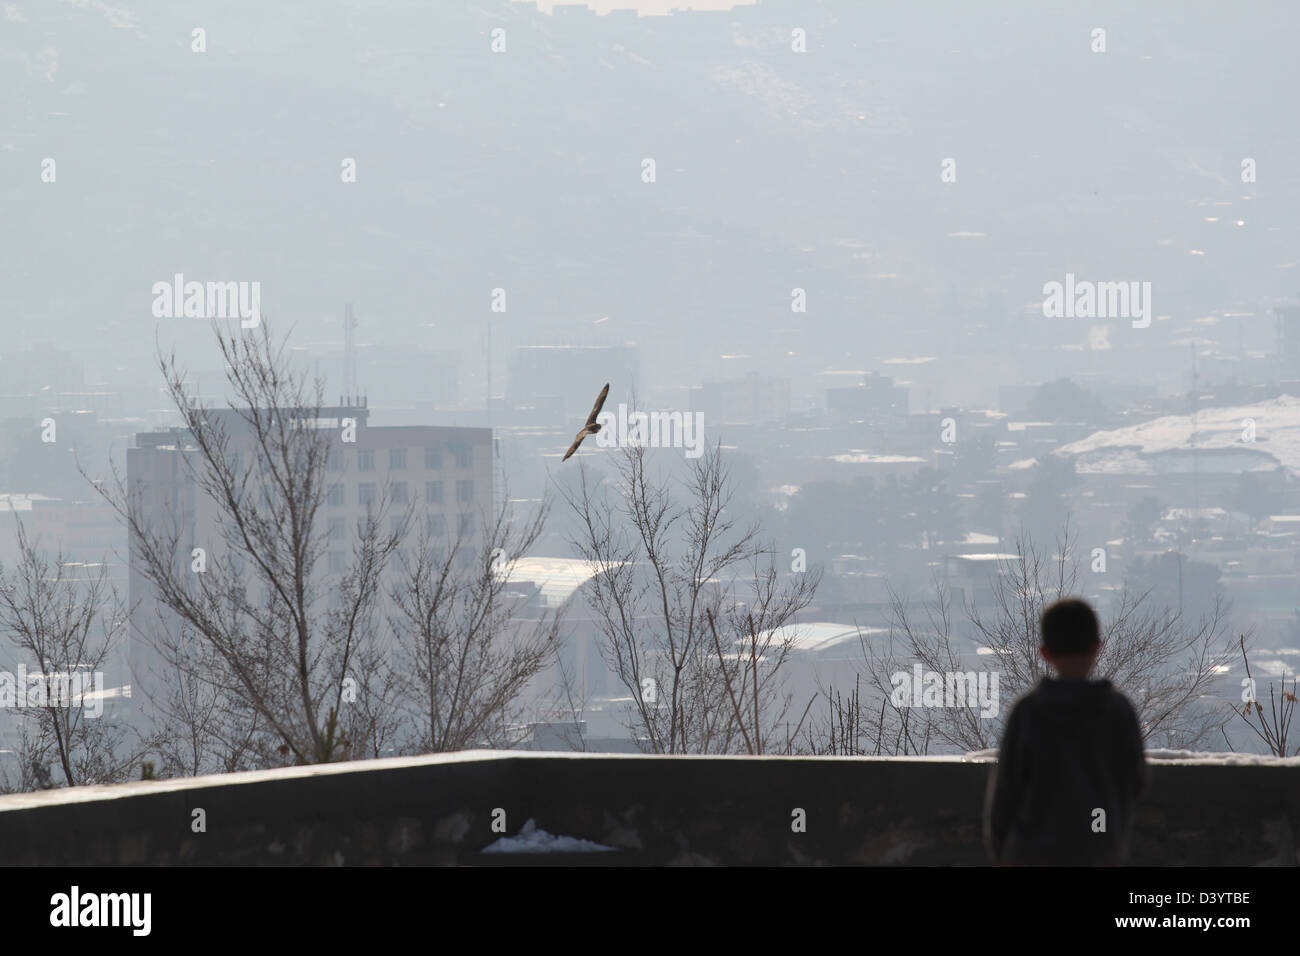 an owl circle the air above Kabul, Afghanistan. - Stock Image